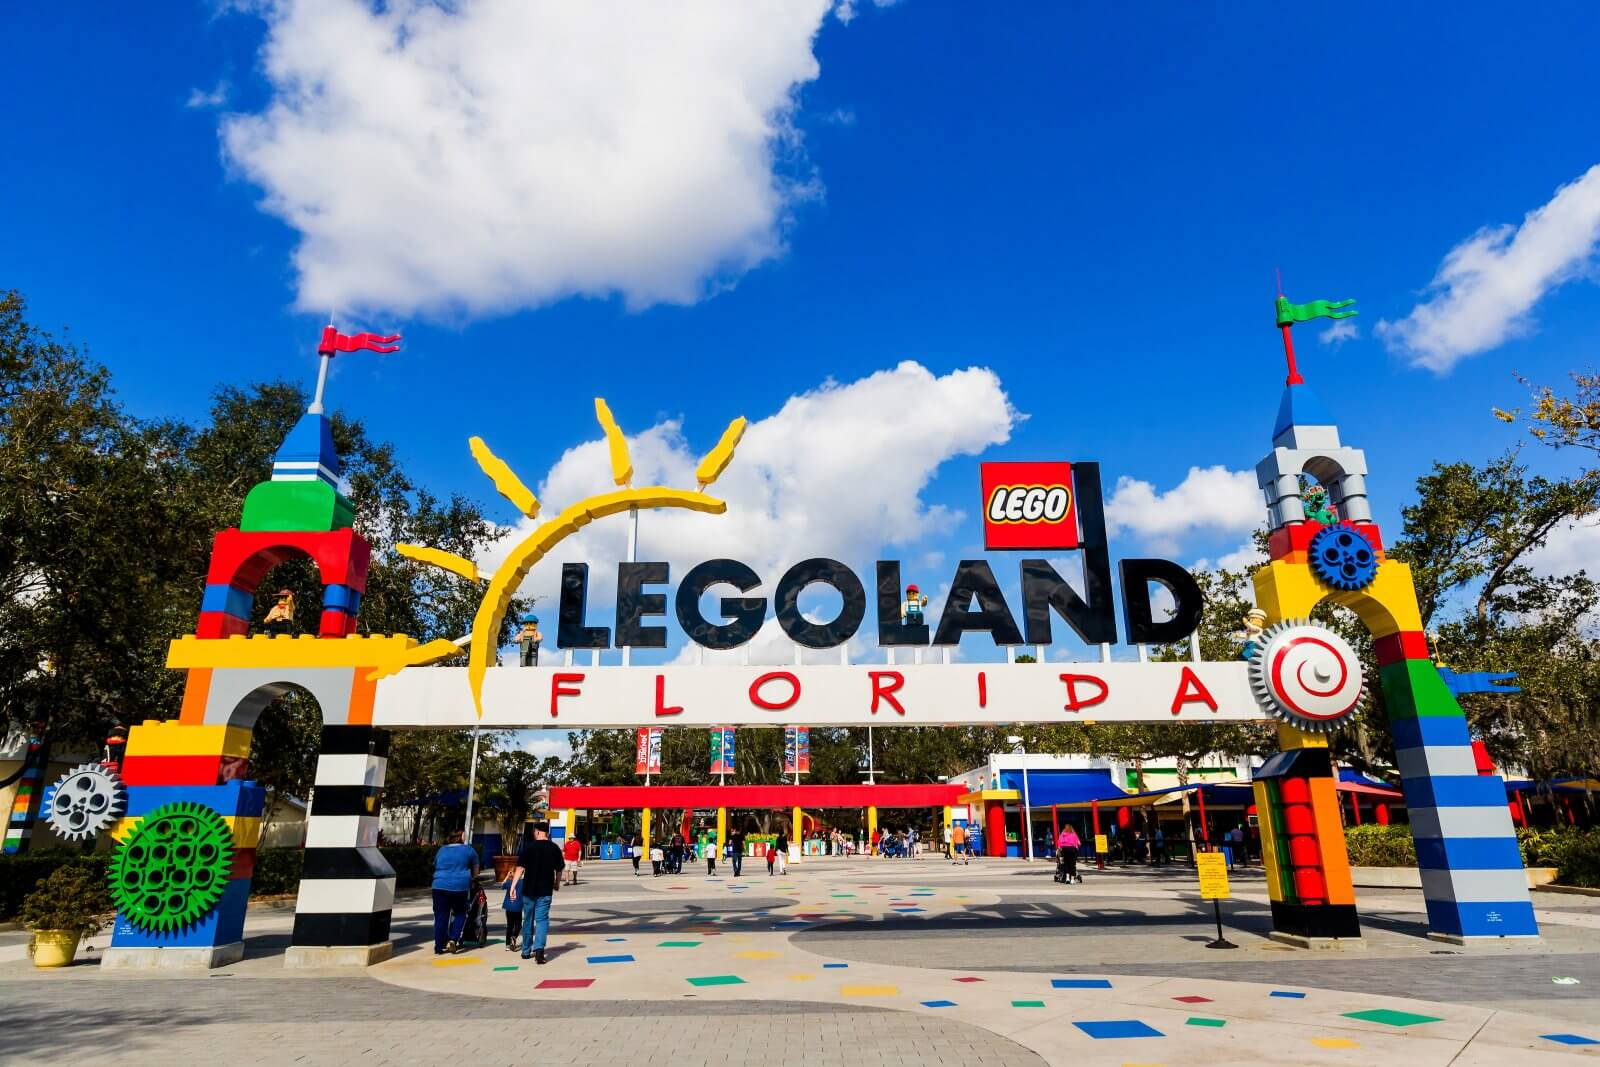 Legoland Florida Resort Continues to Spur Growth in East